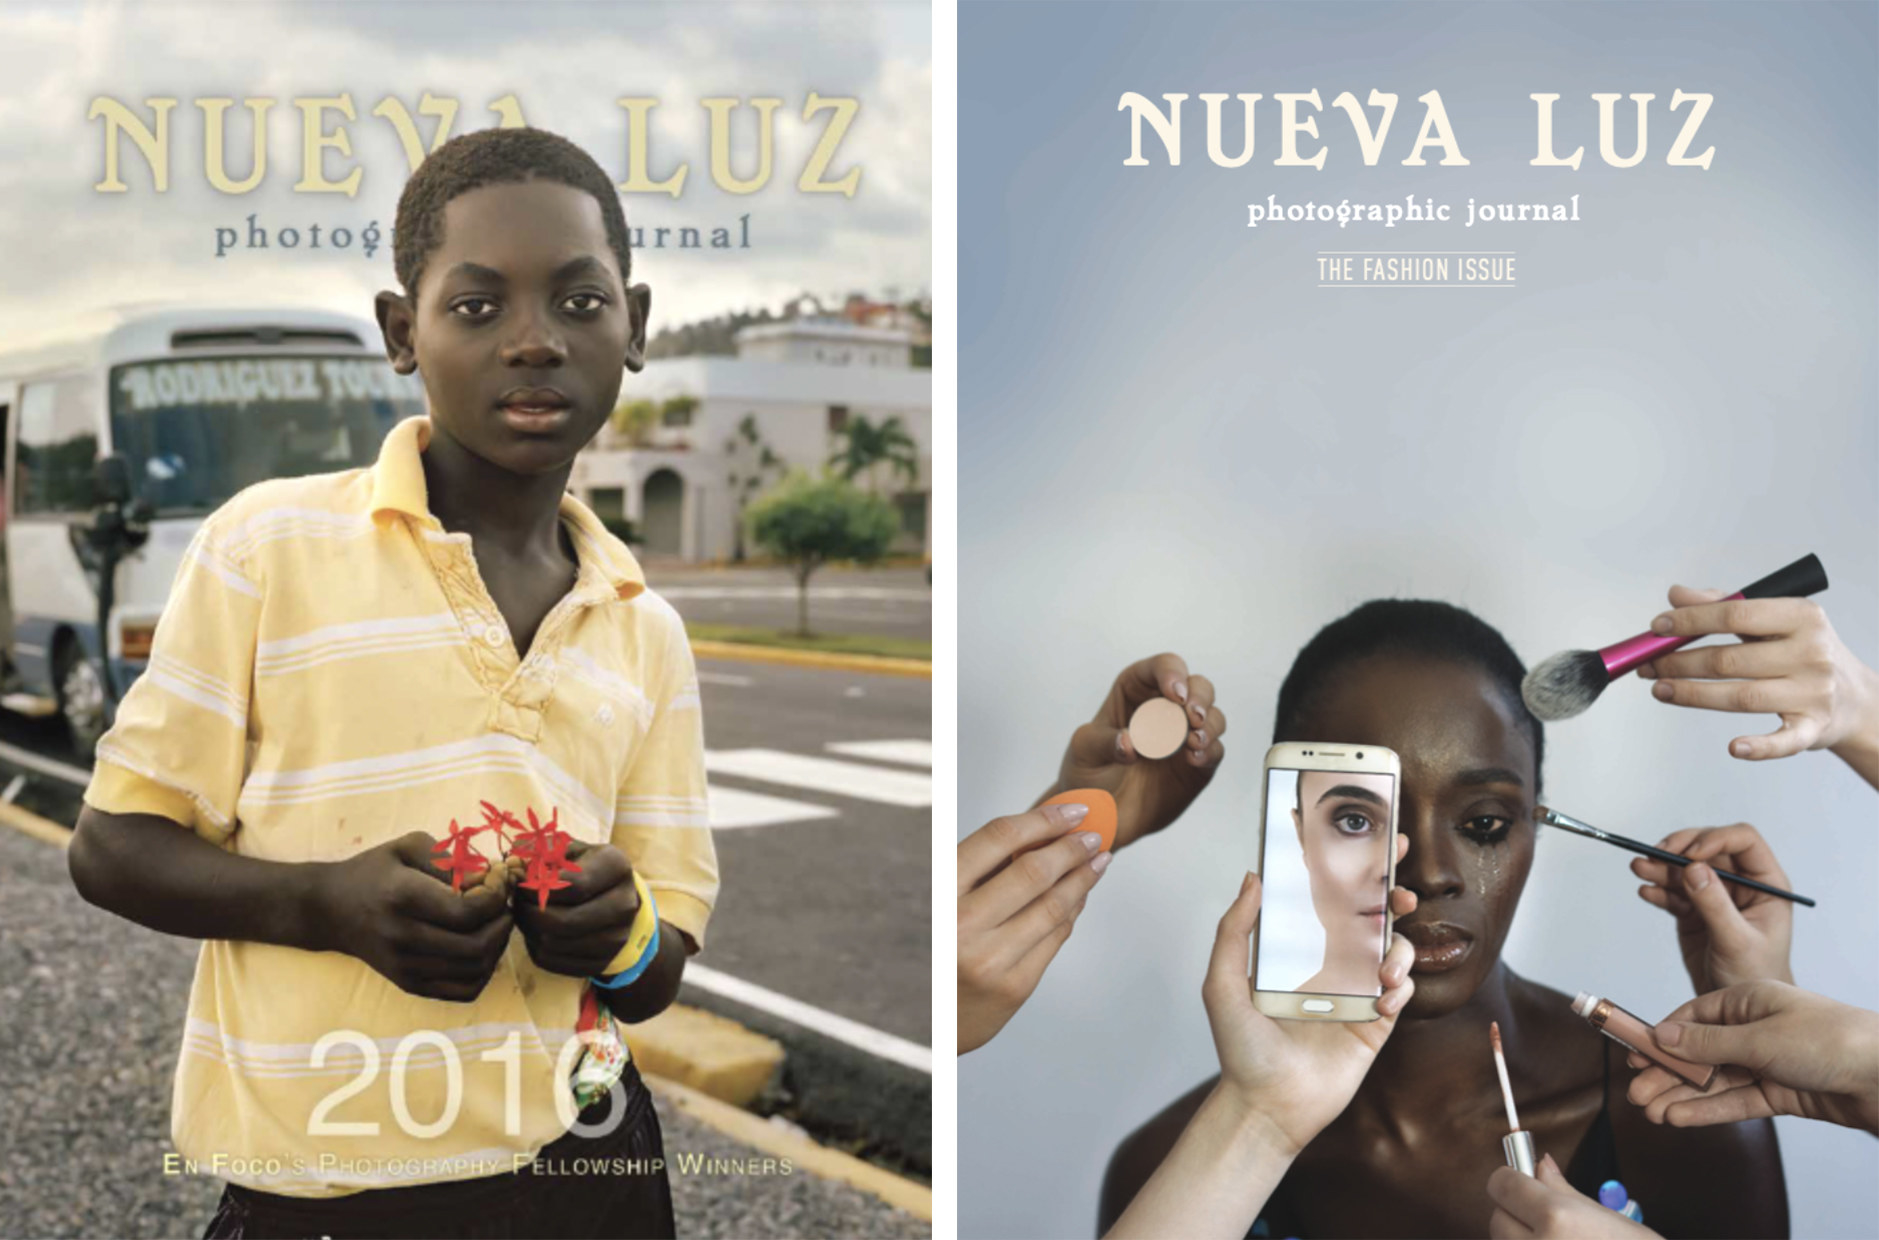 Two magazine covers, the left with a young boy in a polo shirt, the right with a woman who has makeup and a phone showing another woman up to her face